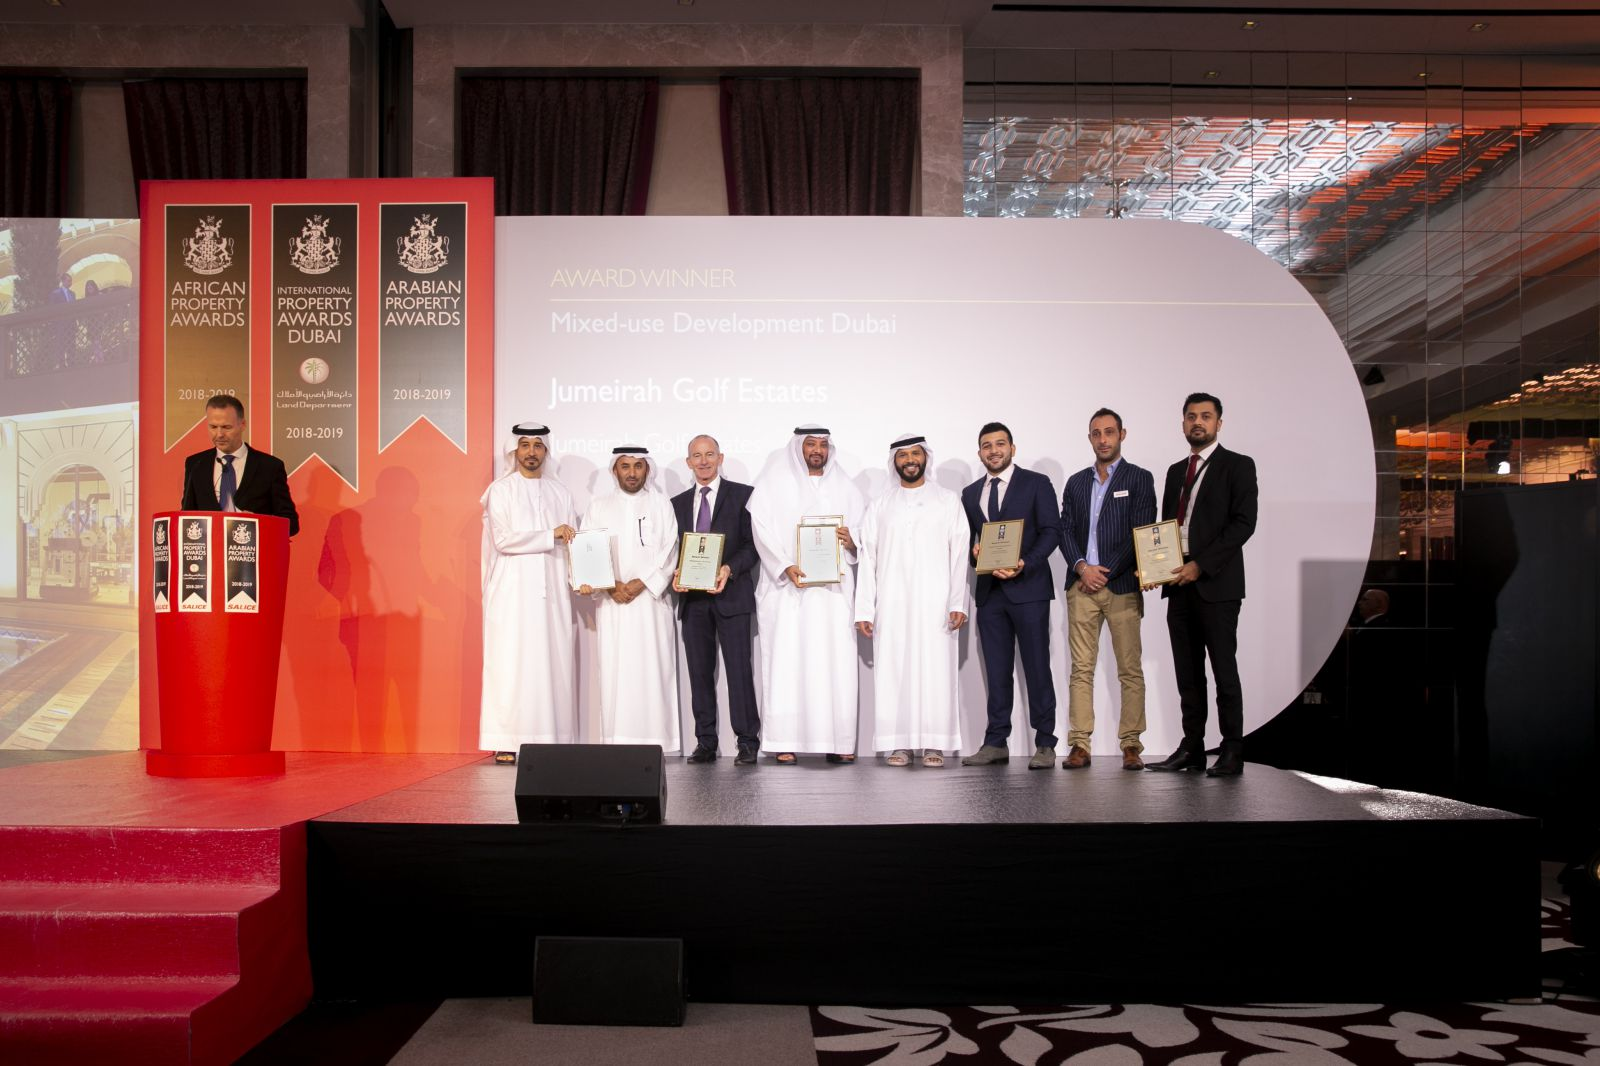 JUMEIRAH GOLF ESTATES SWEEPS SEVEN WINS AT  INTERNATIONAL PROPERTY AWARDS DUBAI 2018